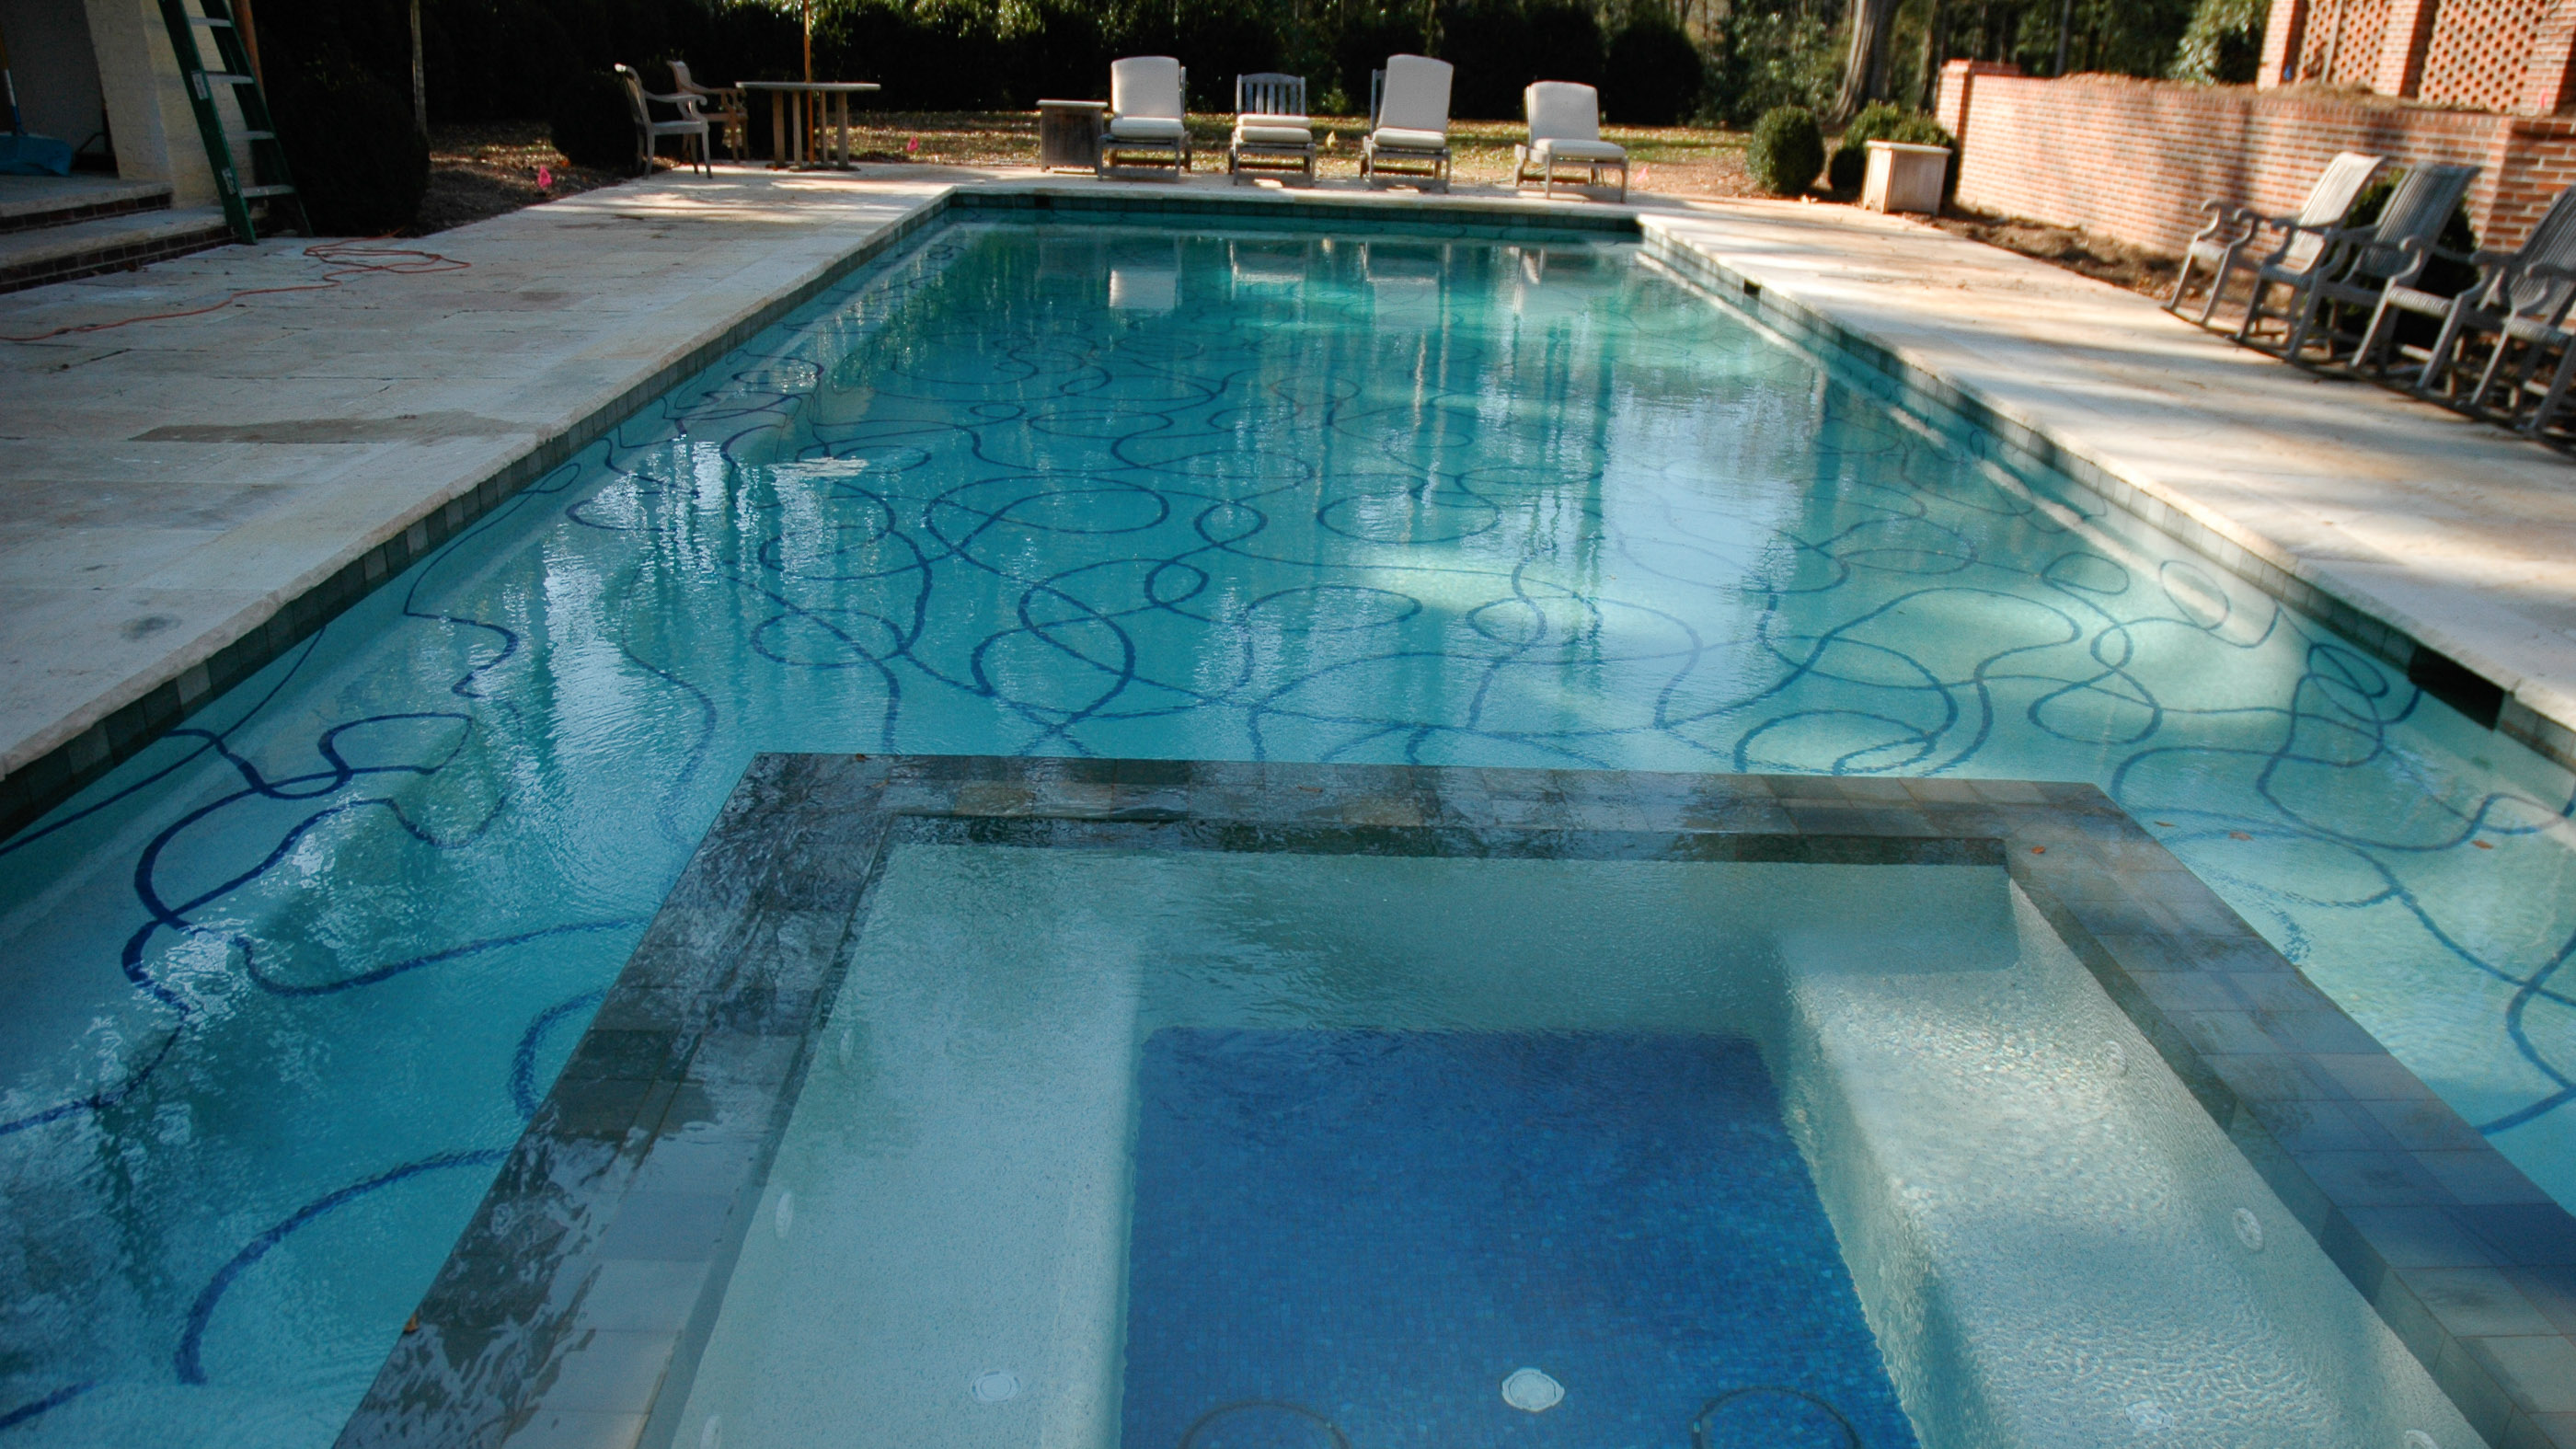 View of swimming pool lined with tile ribbons decorating the pool basin